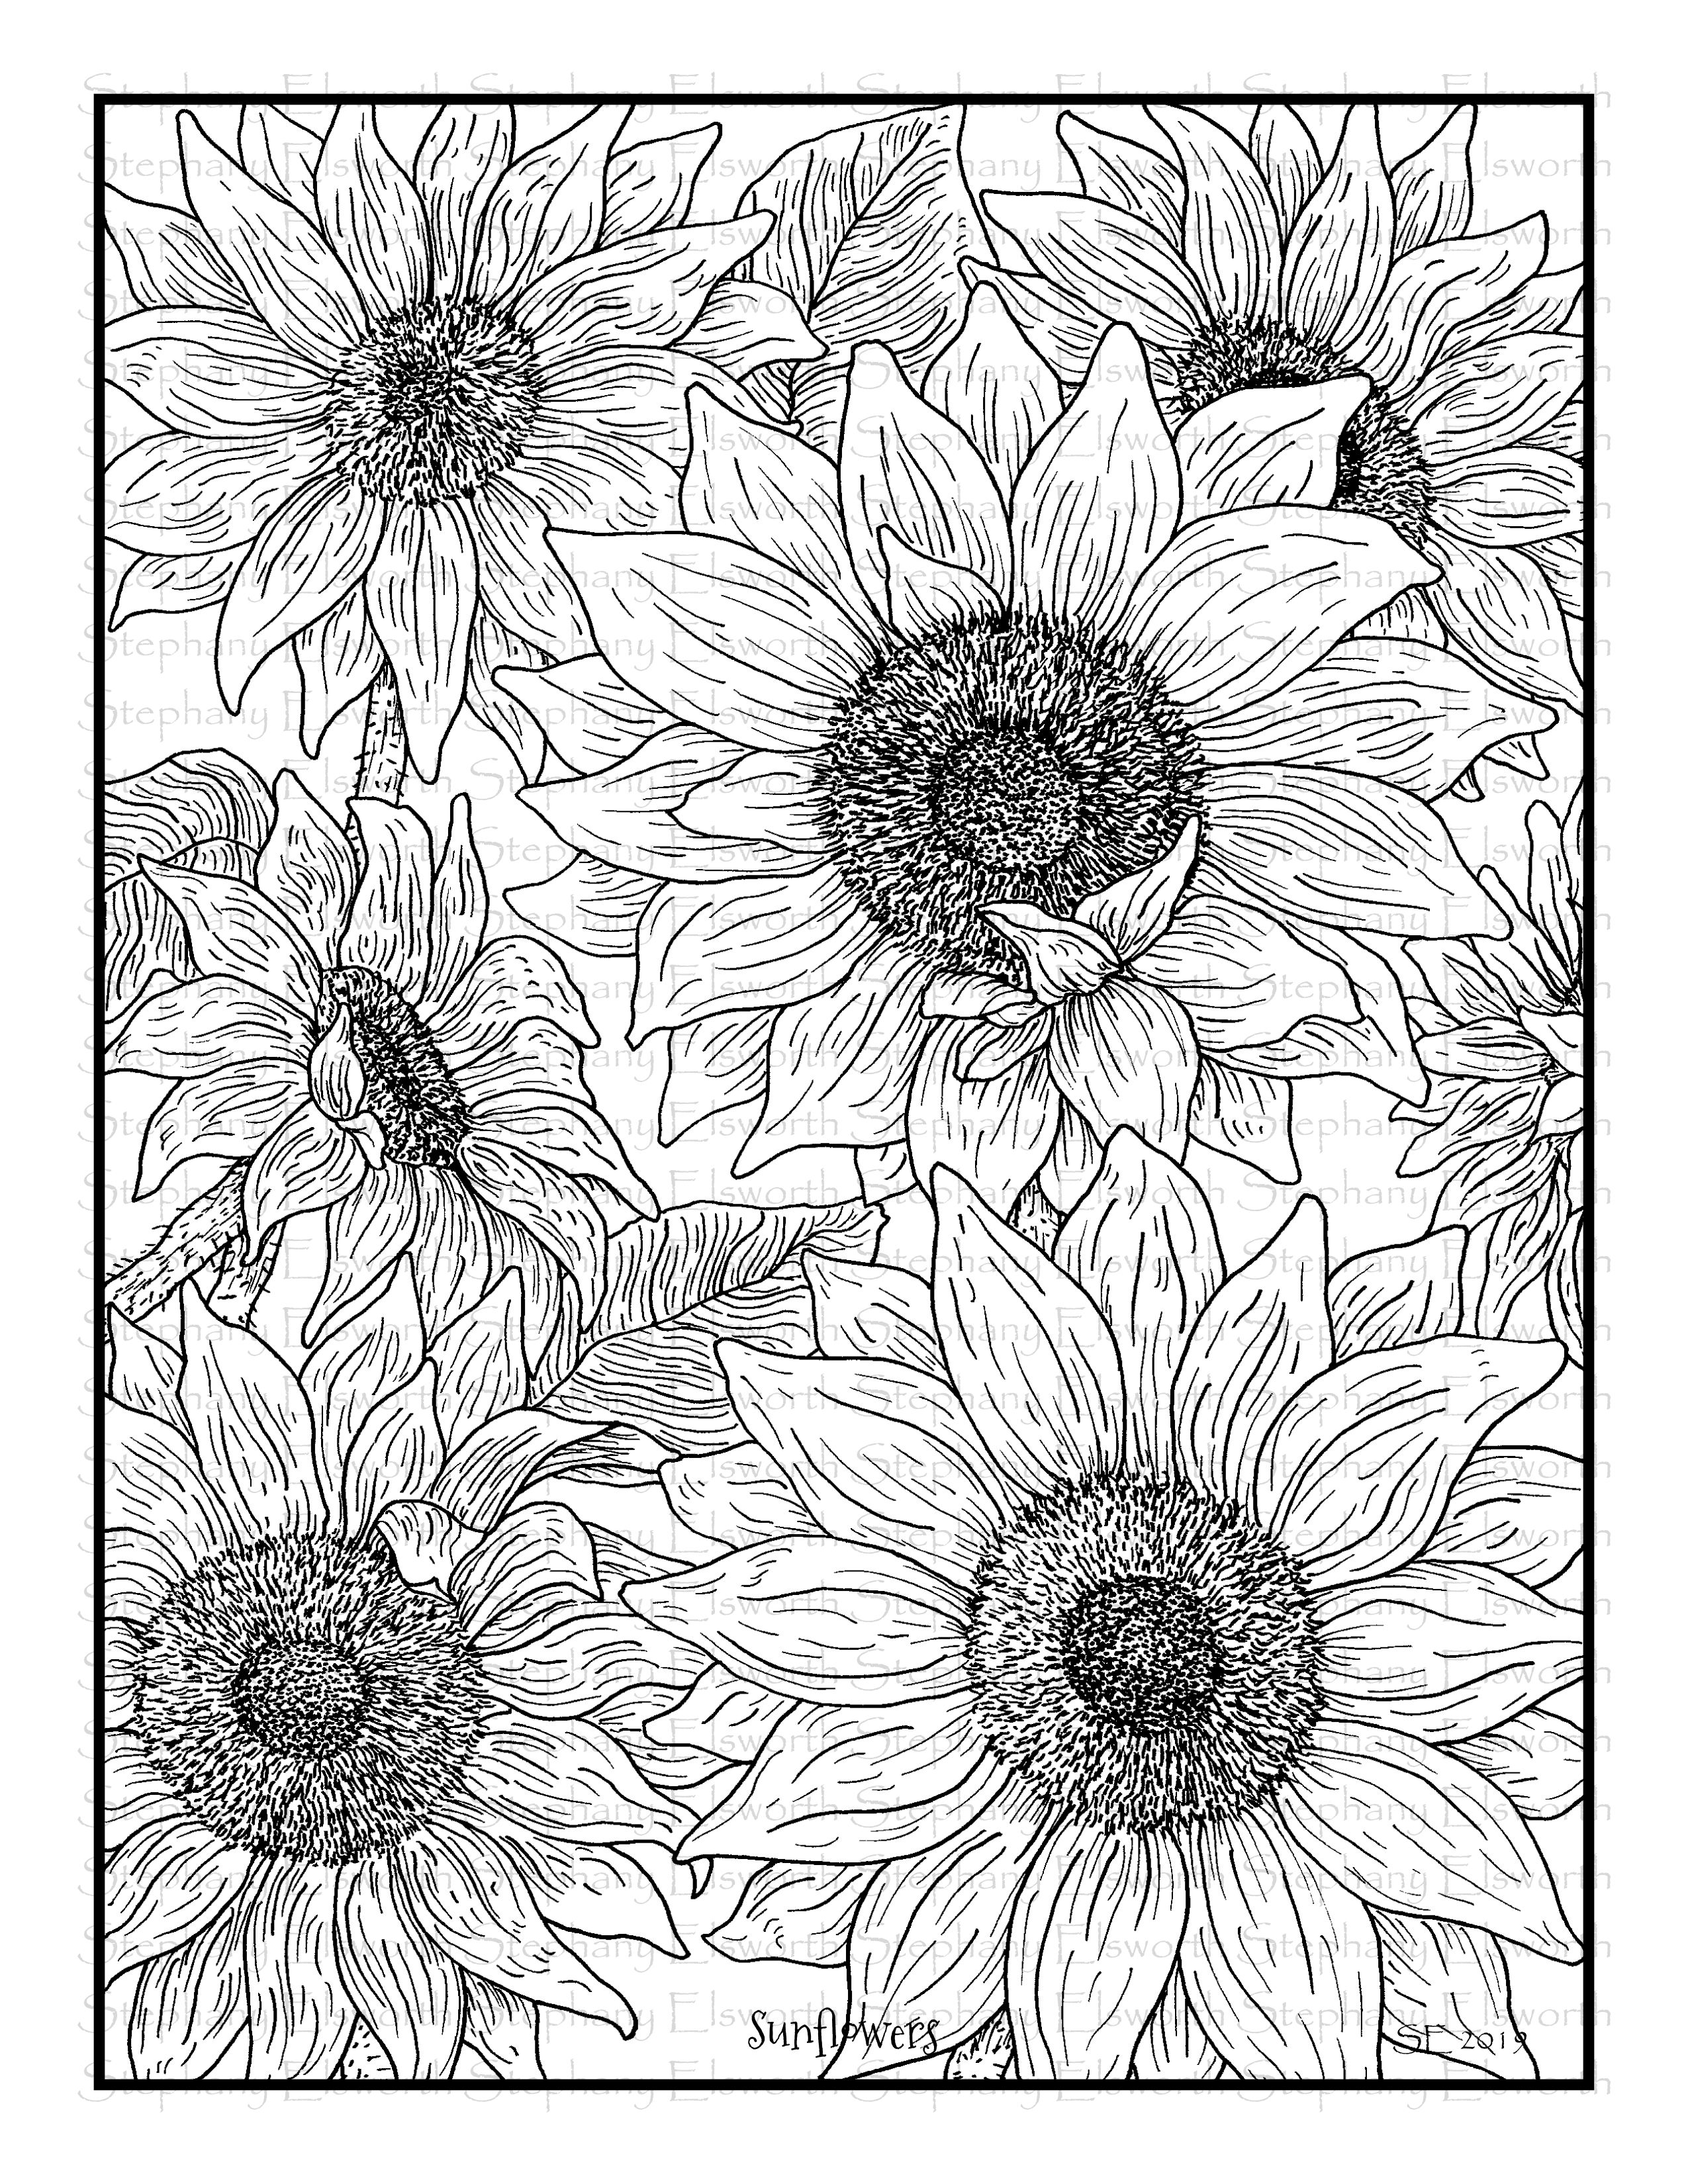 sunflower pictures to colour in free printable sunflower coloring pages for kids pictures to sunflower in colour